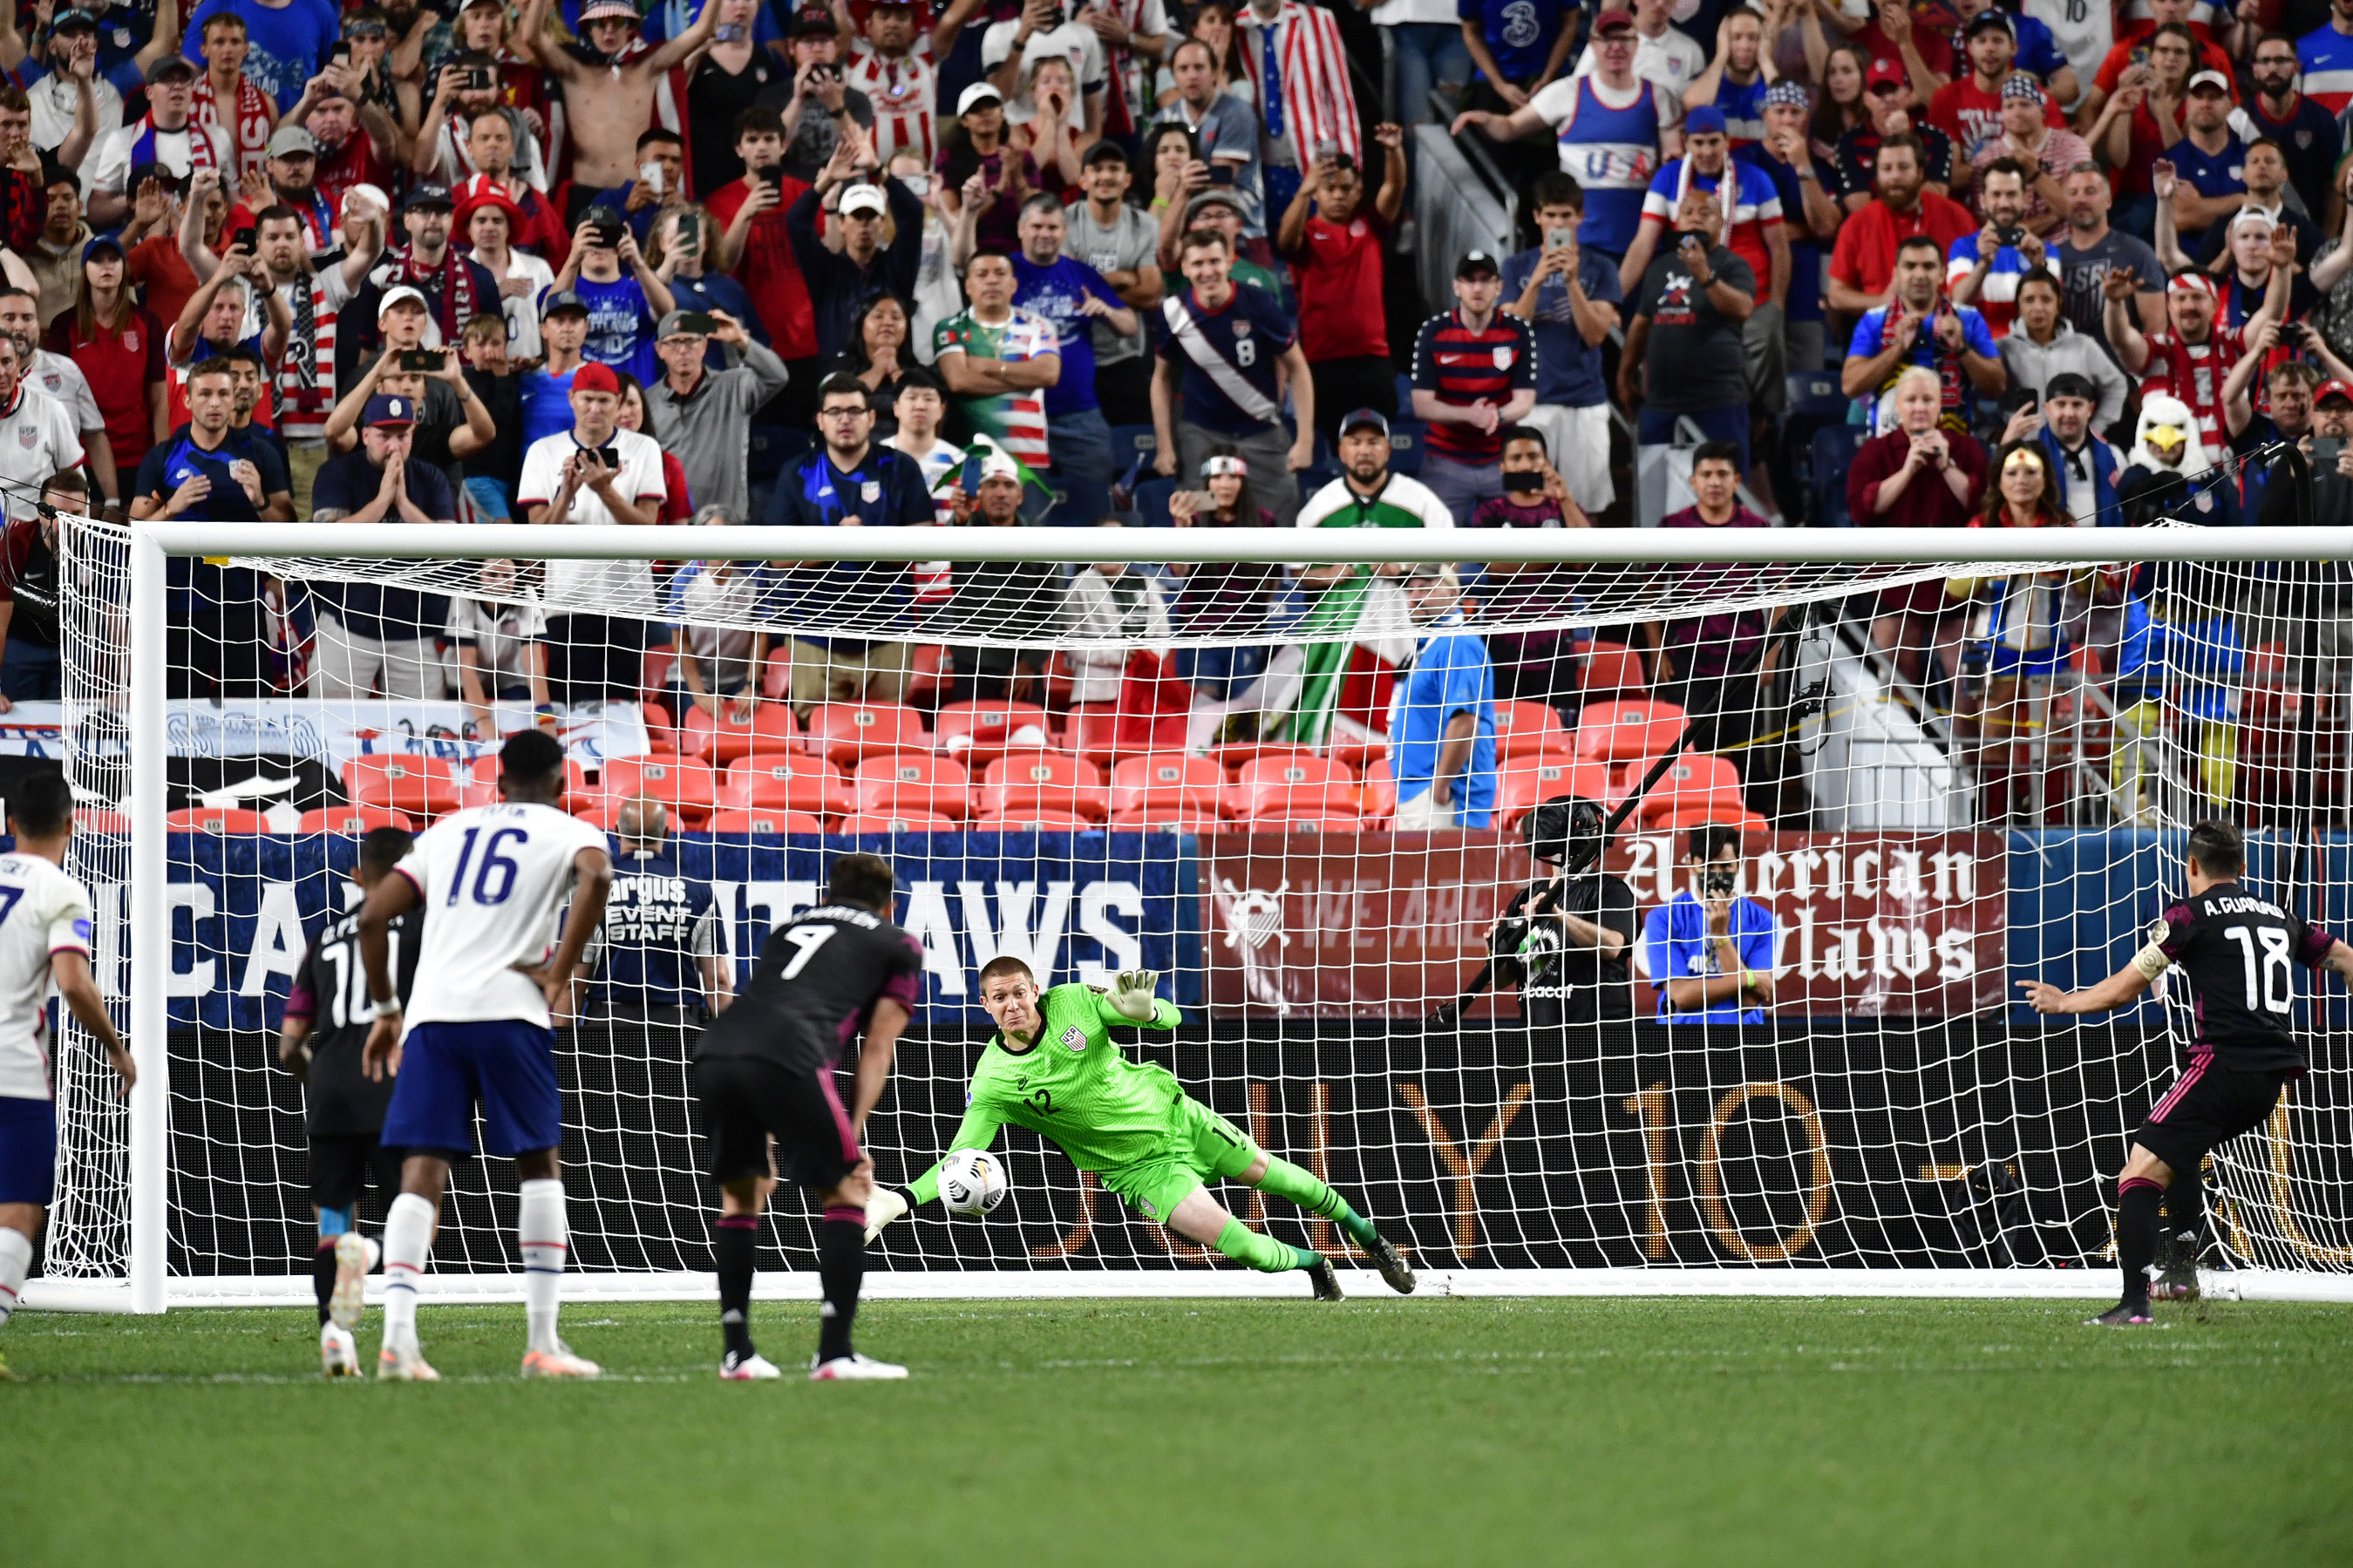 CONCACAF Nations League Finals at Empower Field at Mile High in Denver, Colorado